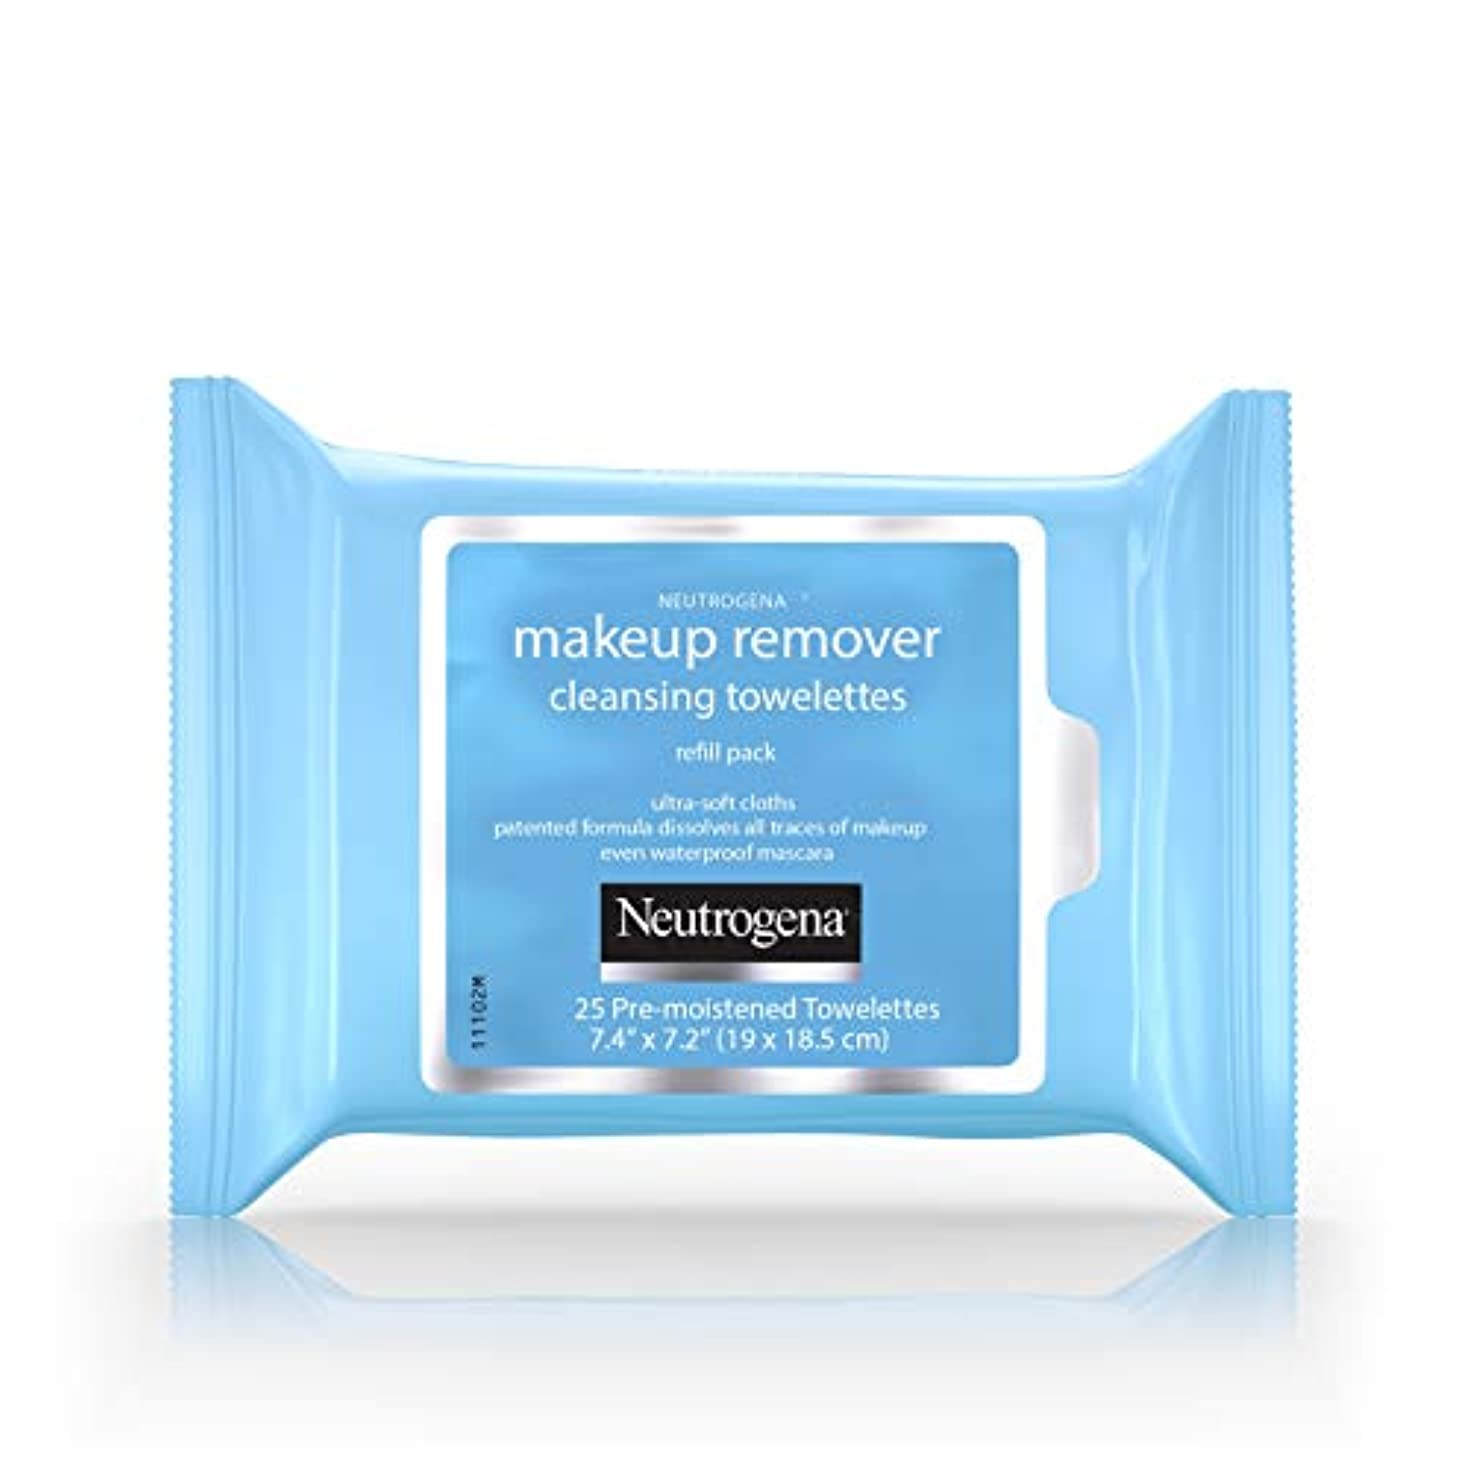 タイプ充電効果的にNeutrogena Make-up Remover Cleansing Towelettes Refill Pack 25 Pc (並行輸入品)